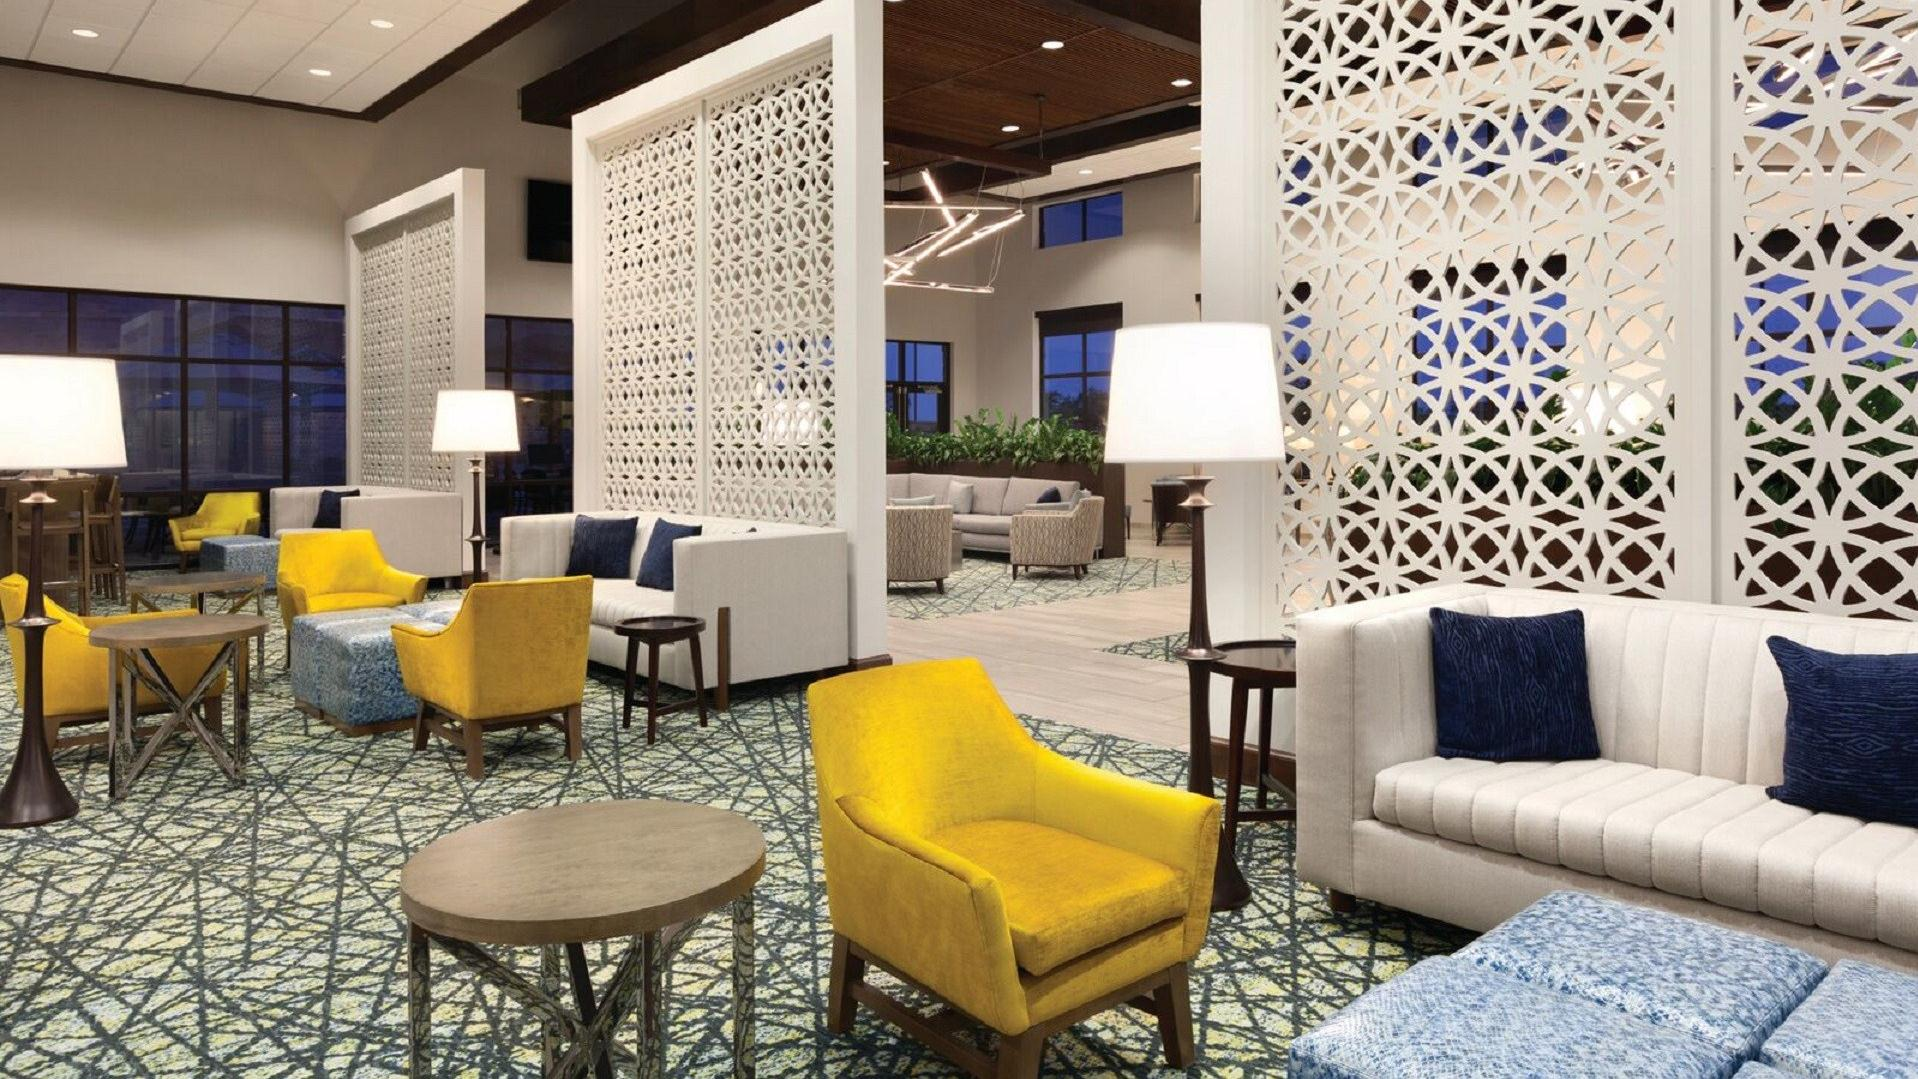 Meetings and events at Embassy Suites by Hilton San Antonio